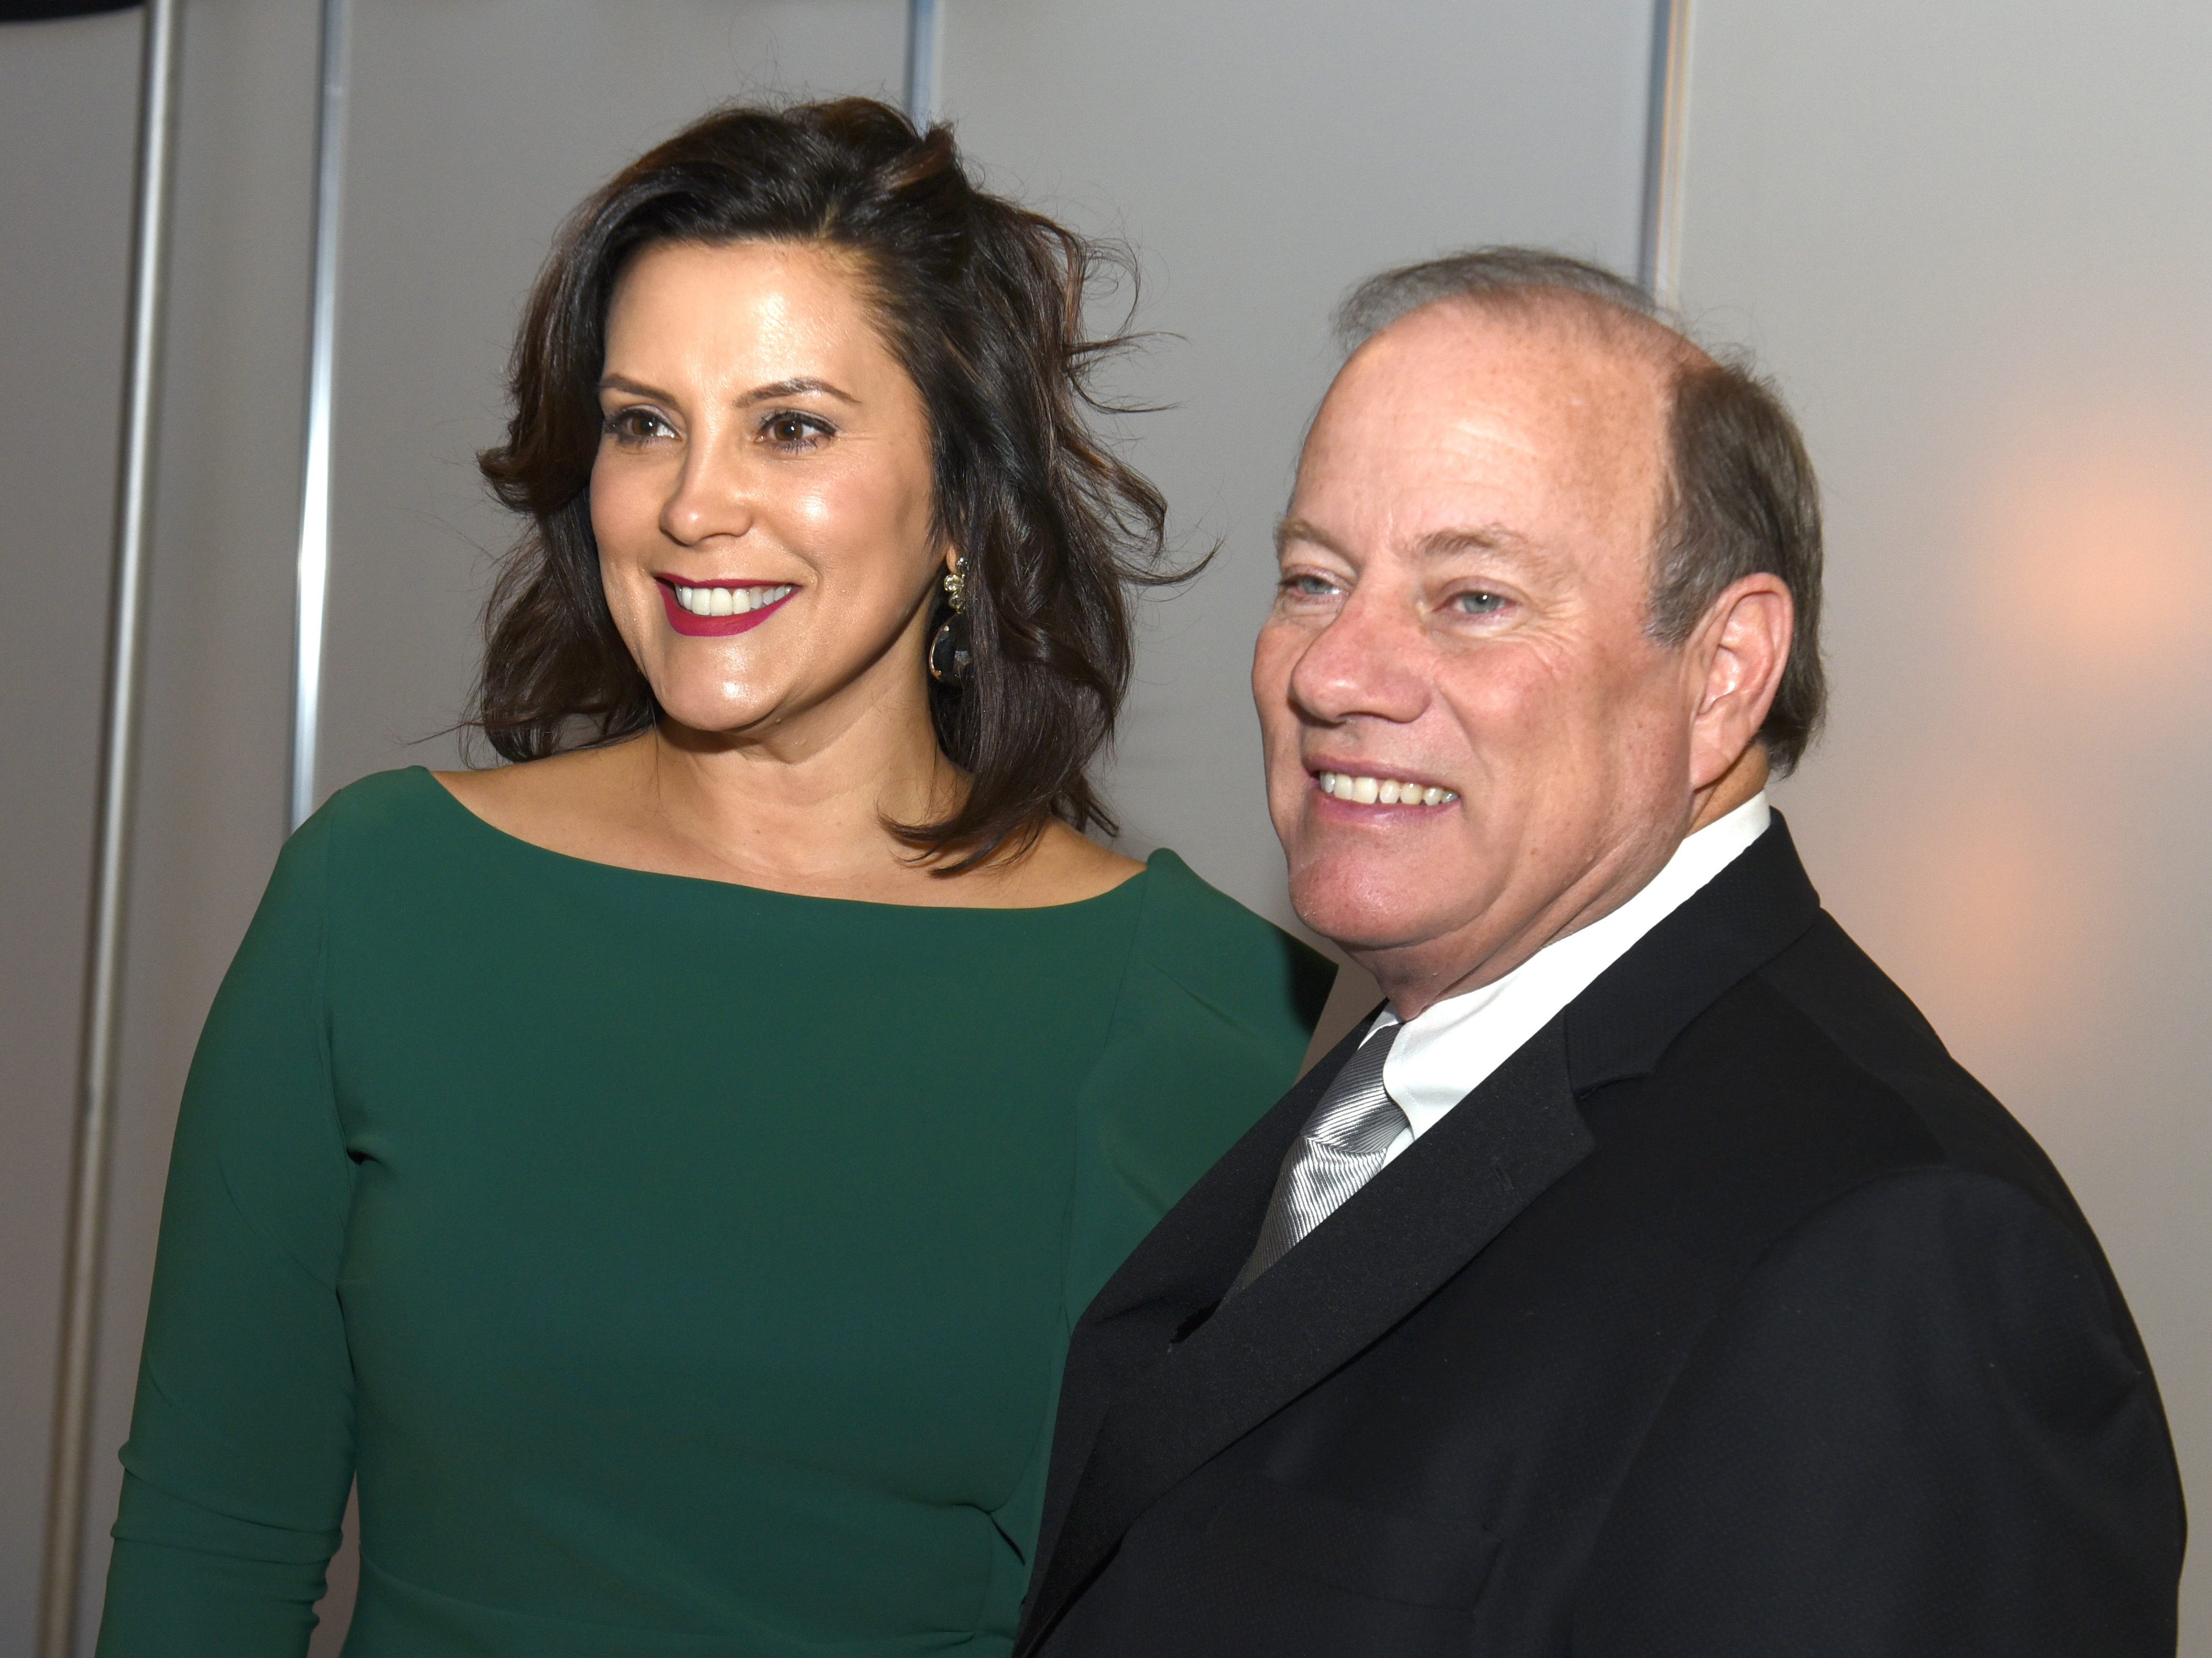 Michigan Gov. Gretchen Whitmer with Detroit Mayor Mike Duggan at the 2019 Auto Show Charity Preview.